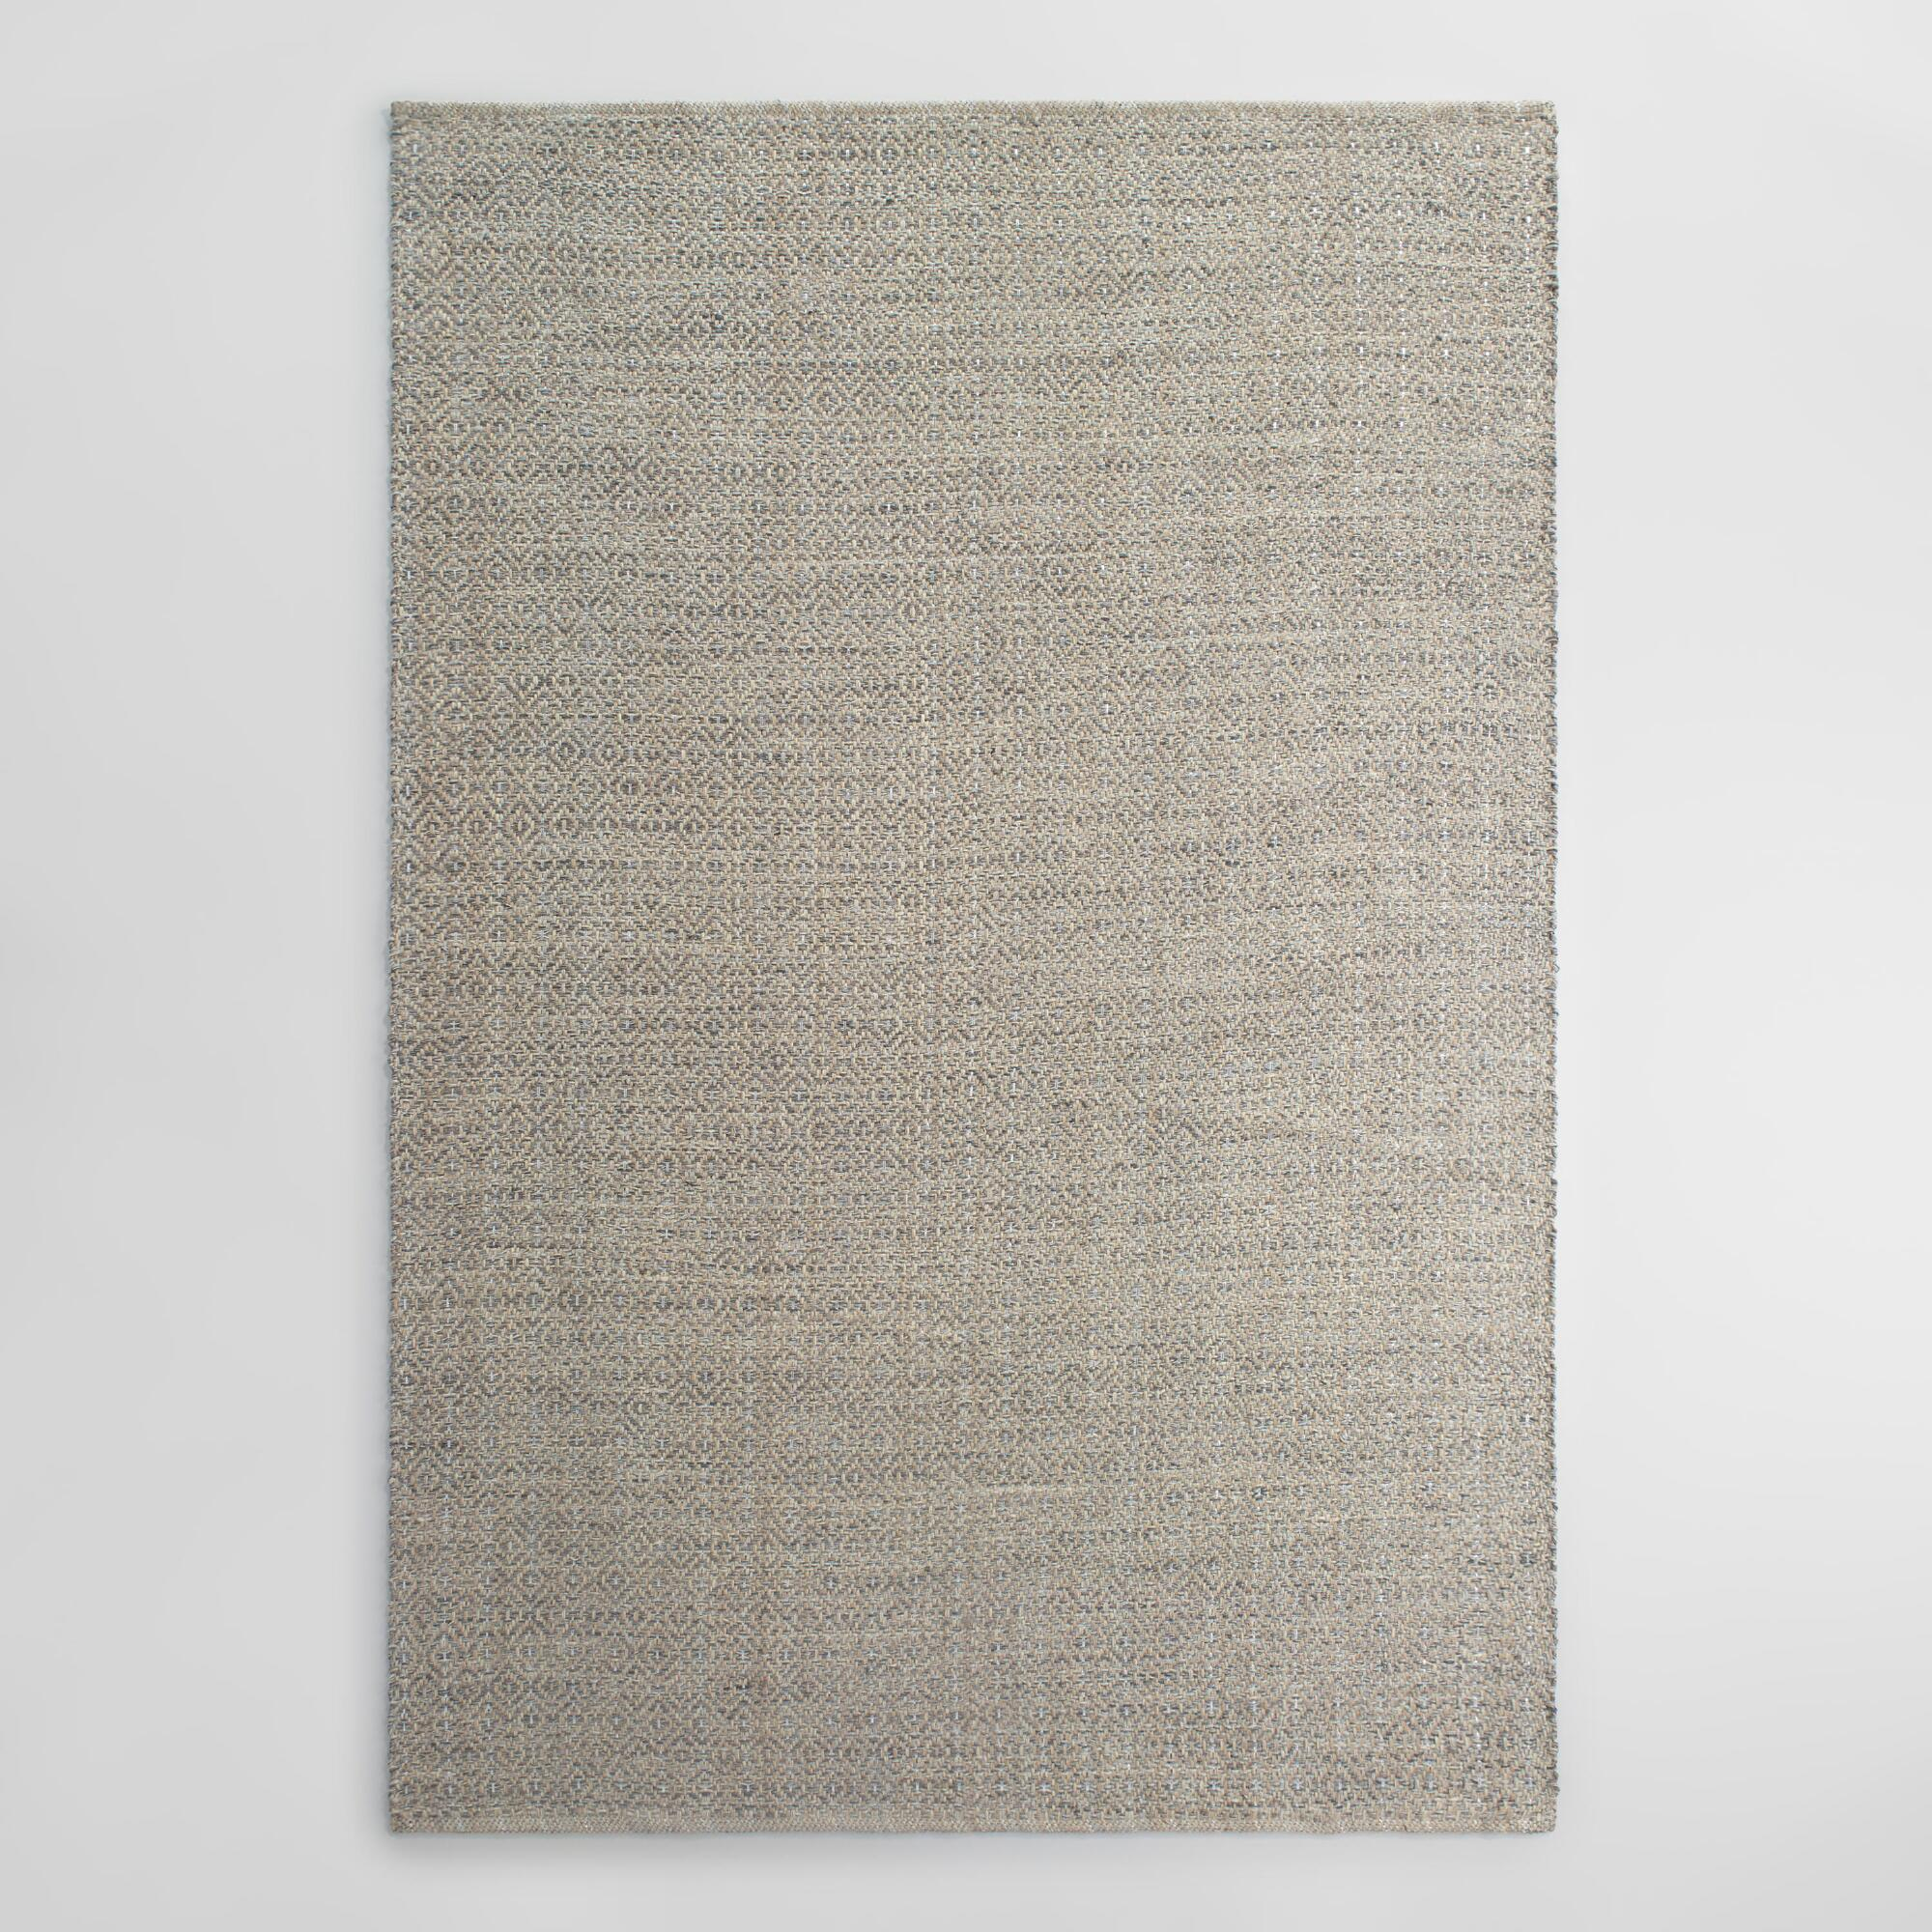 rug grey undefined brass robshaw john bed by linens khoma gray bath fine